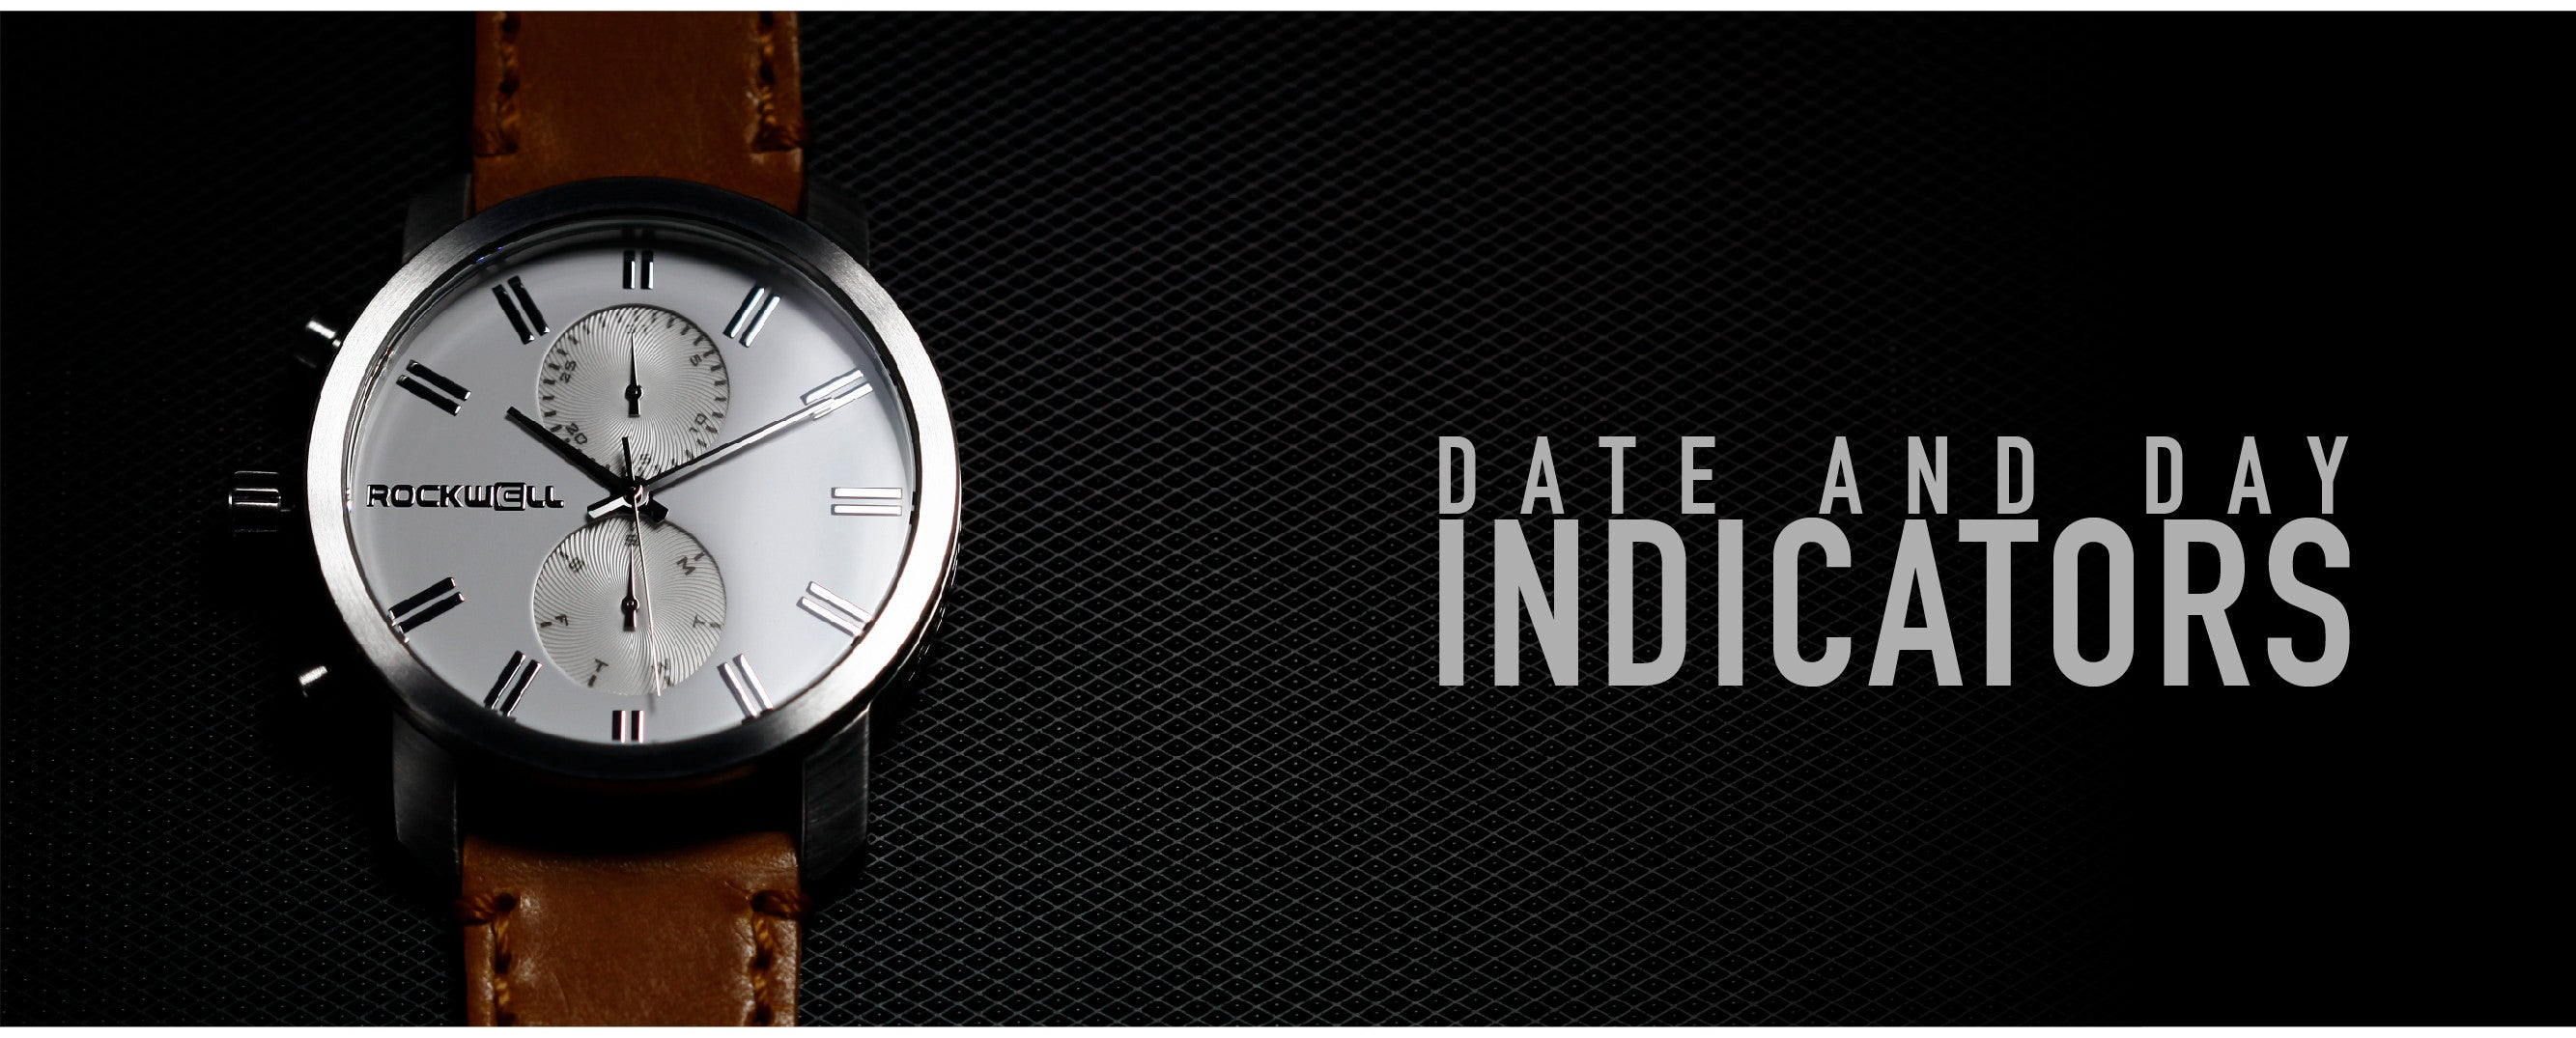 day and date indicators on the apollo watch